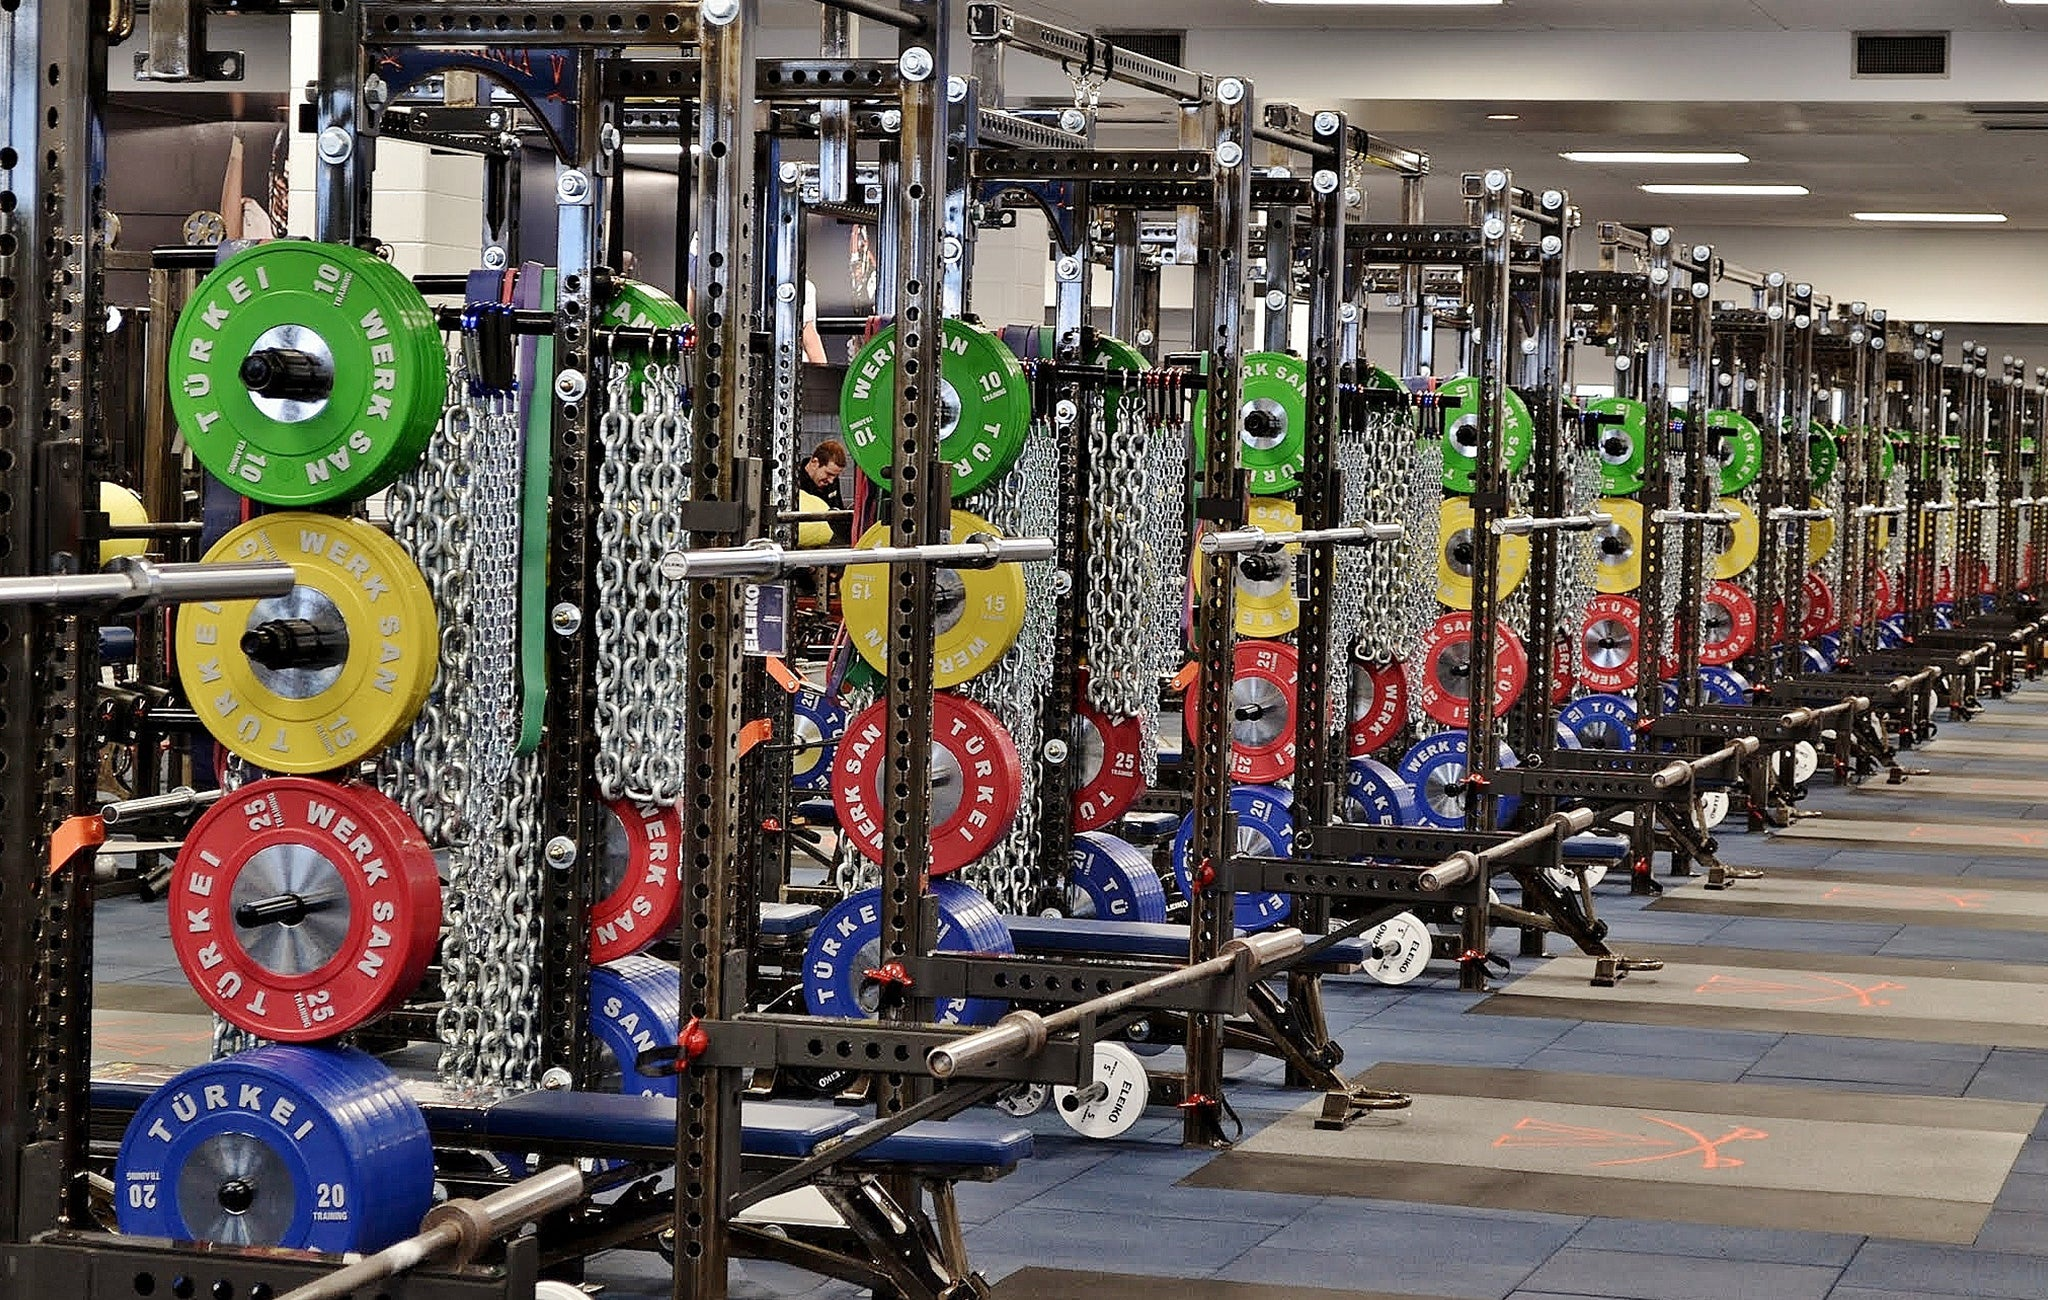 University of Virginia strength and conditioning